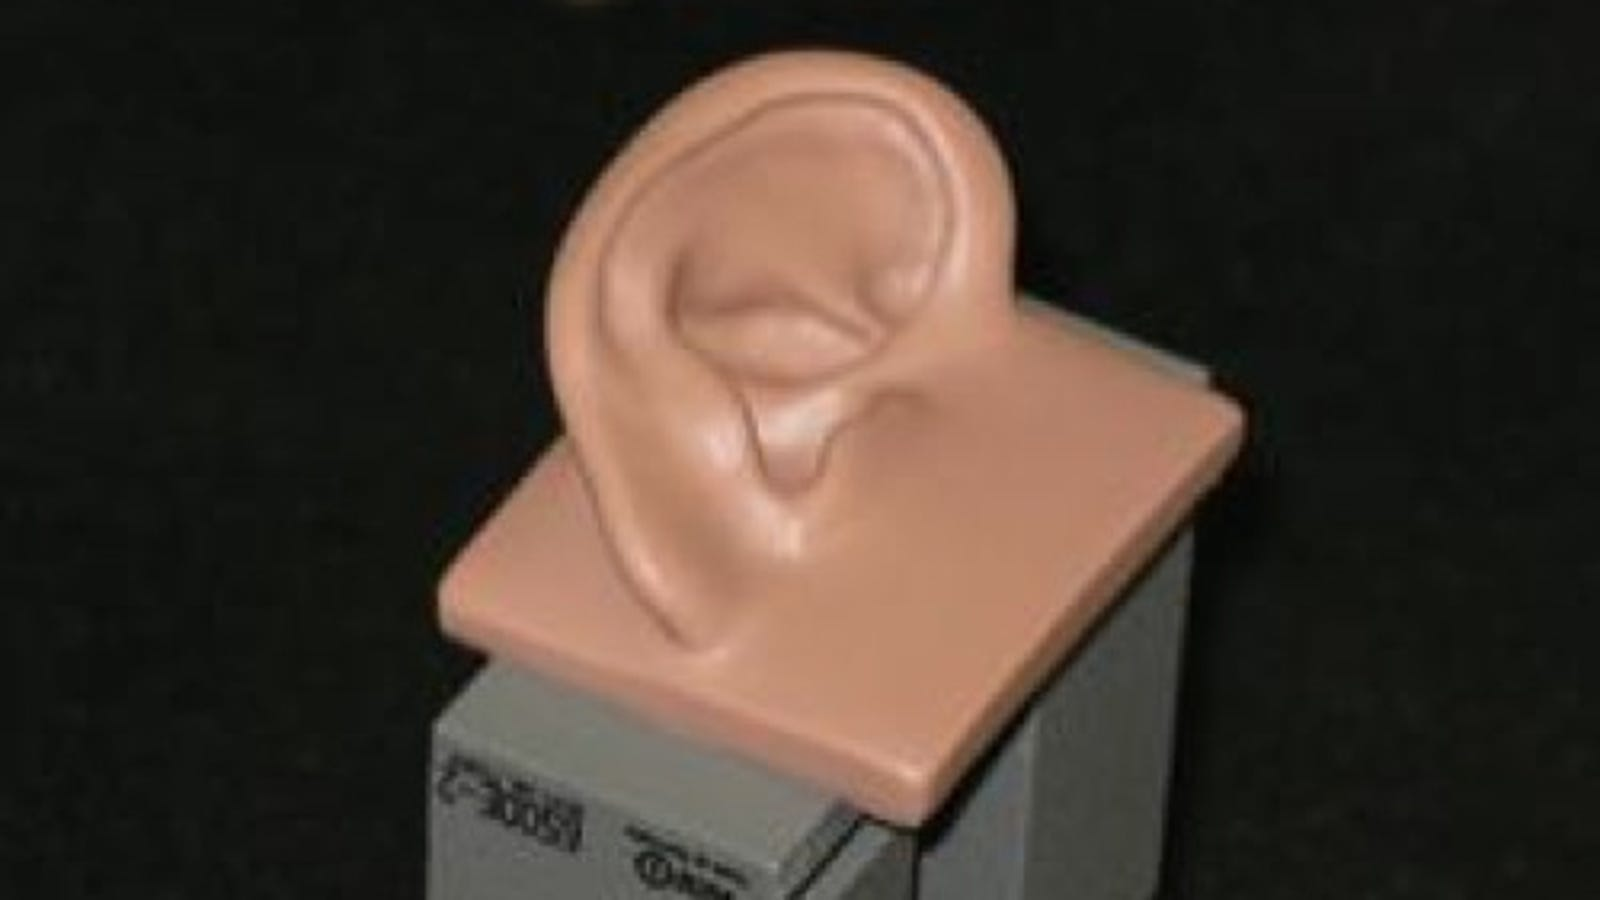 earbud jack plug - Researchers Claim They've Created the Perfect 3D Human Ear Model